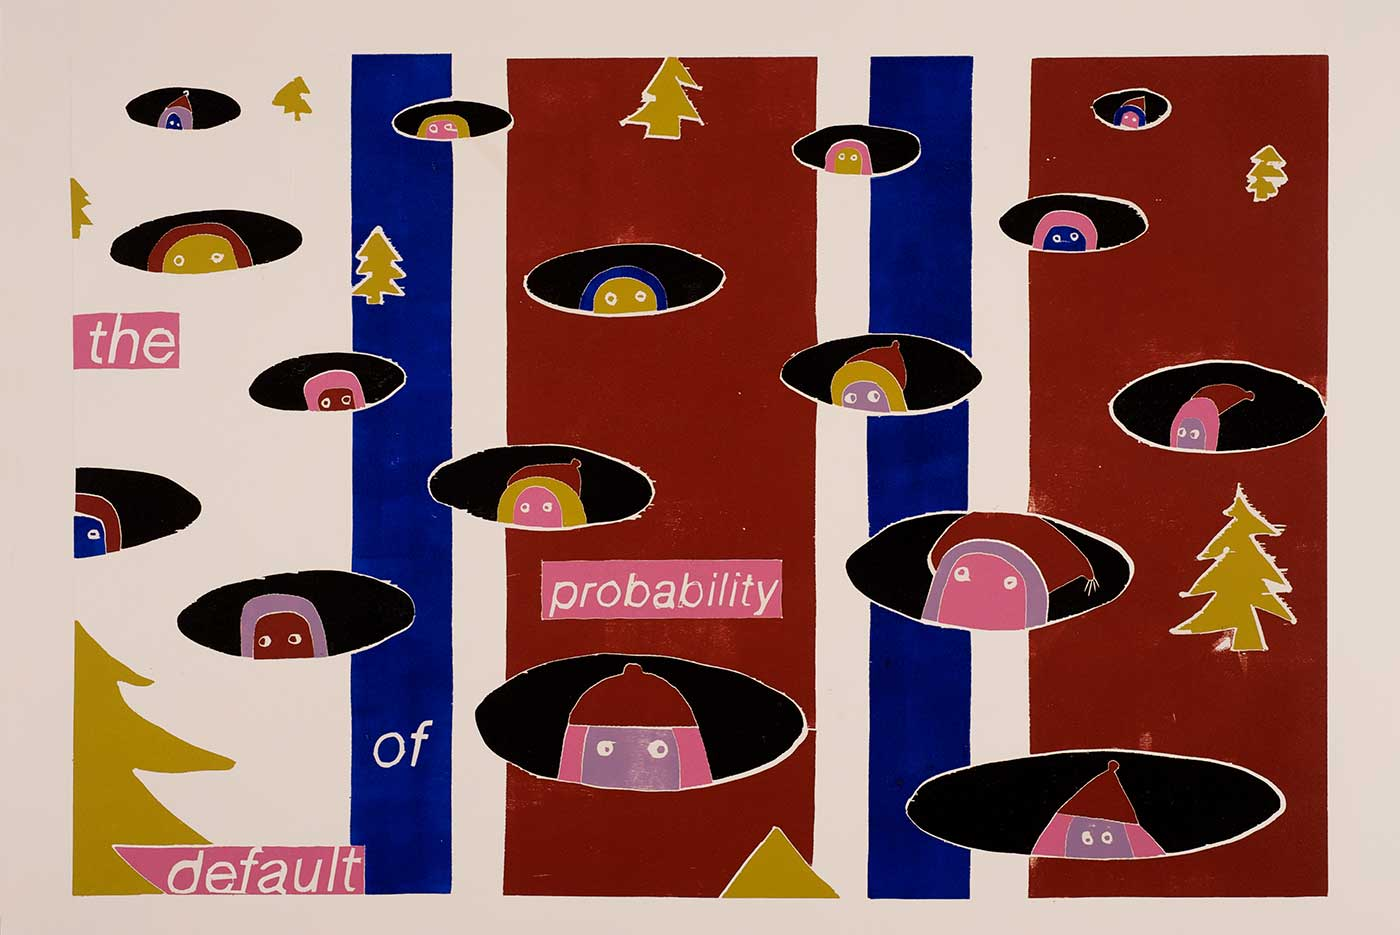 The Probability of Default<br /> Tresnitt <br /> 90 x 60 cm